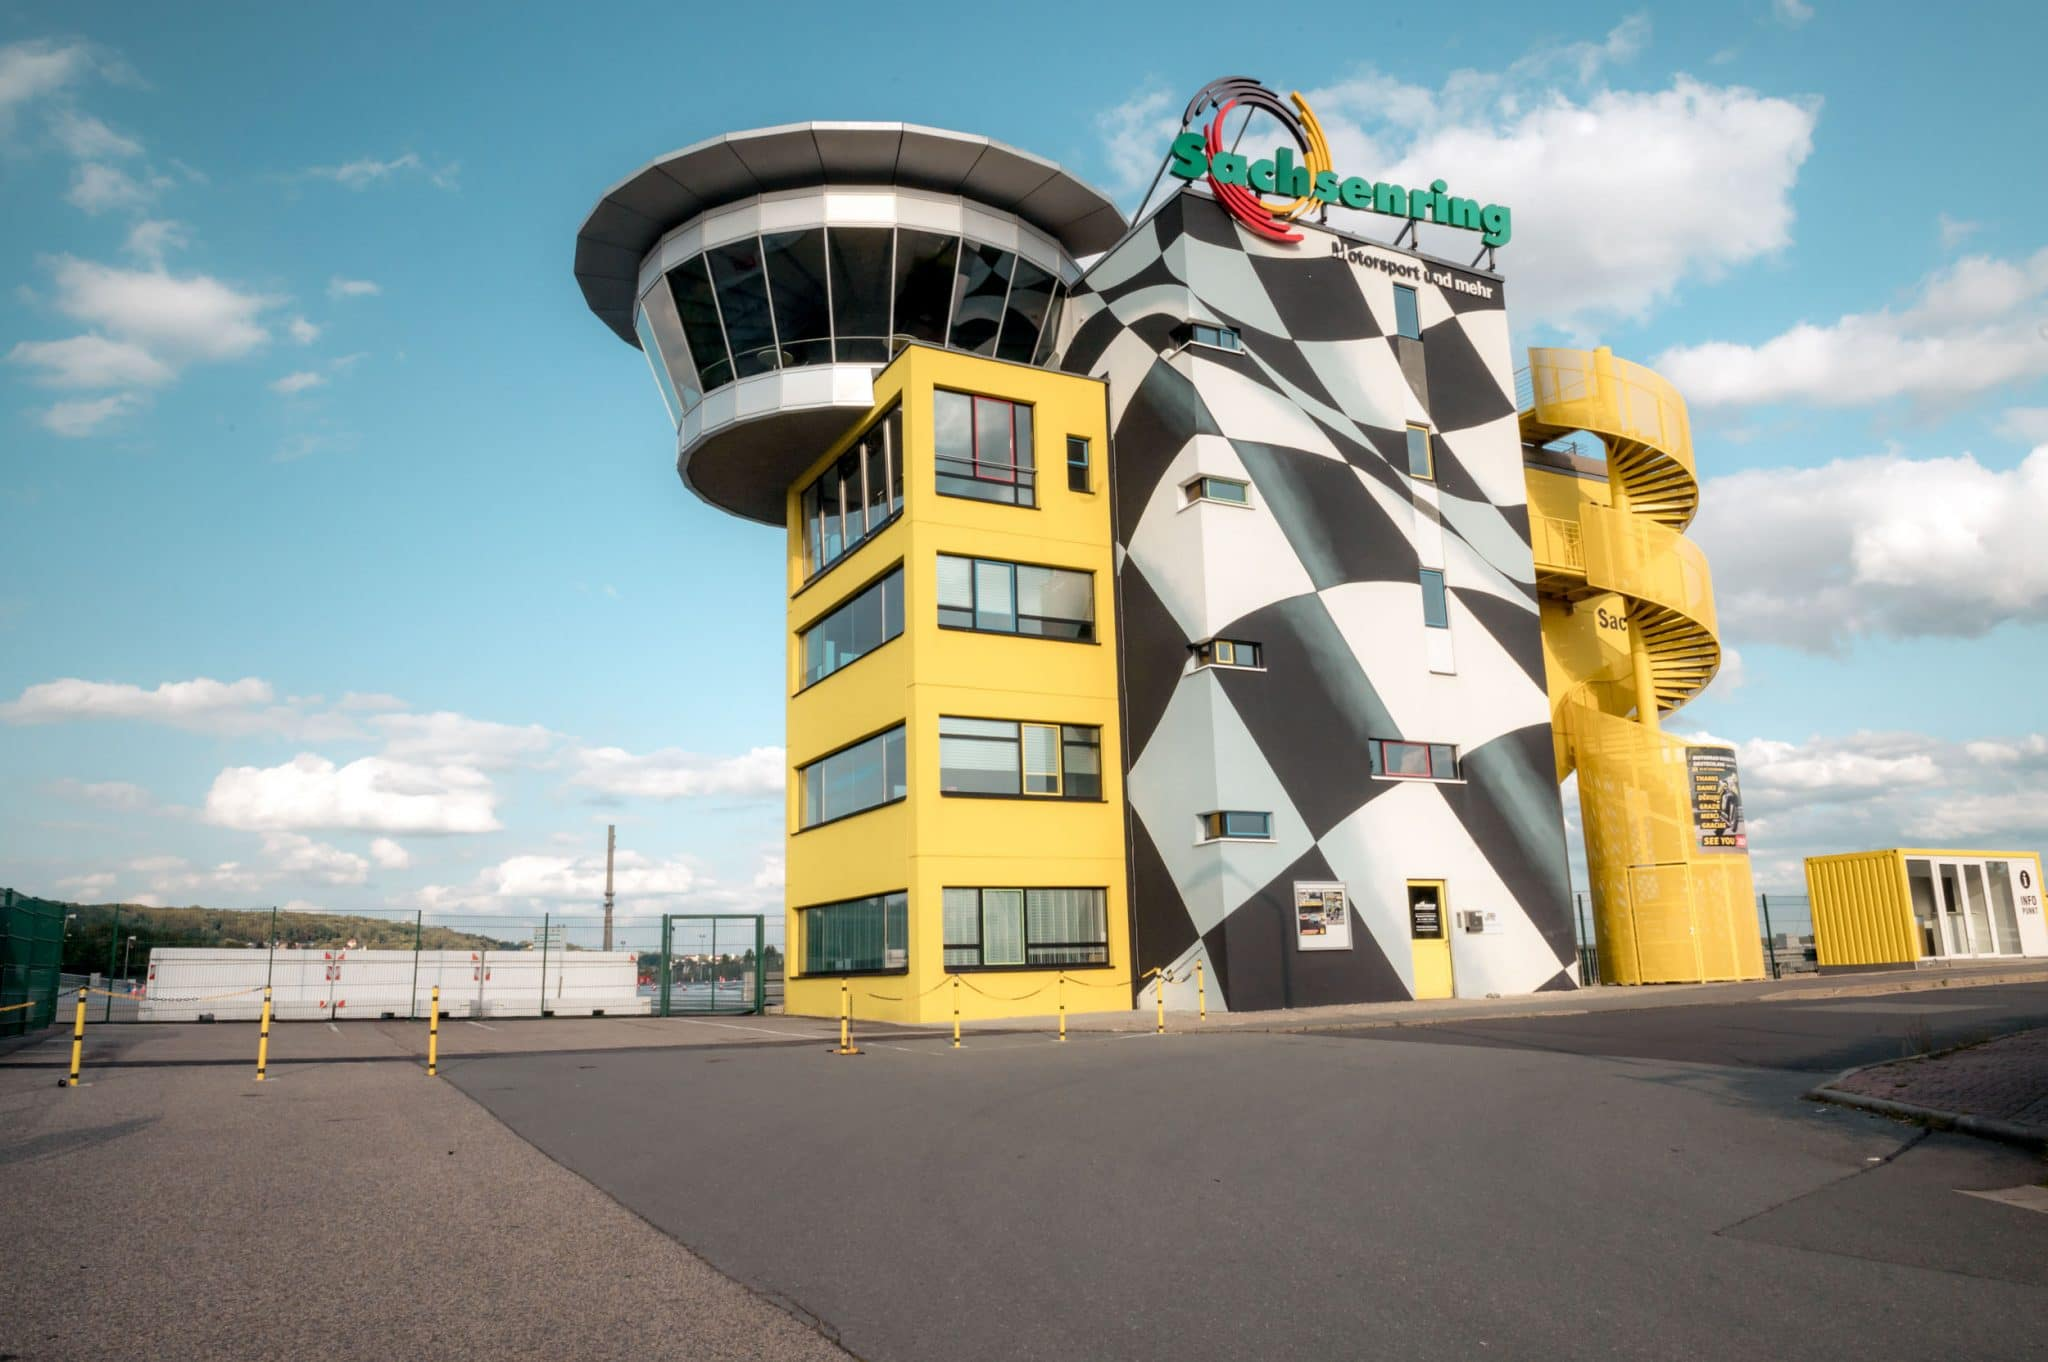 Mercedes Benz Driving Events Sachsenring 11. September 2020 525 scaled |